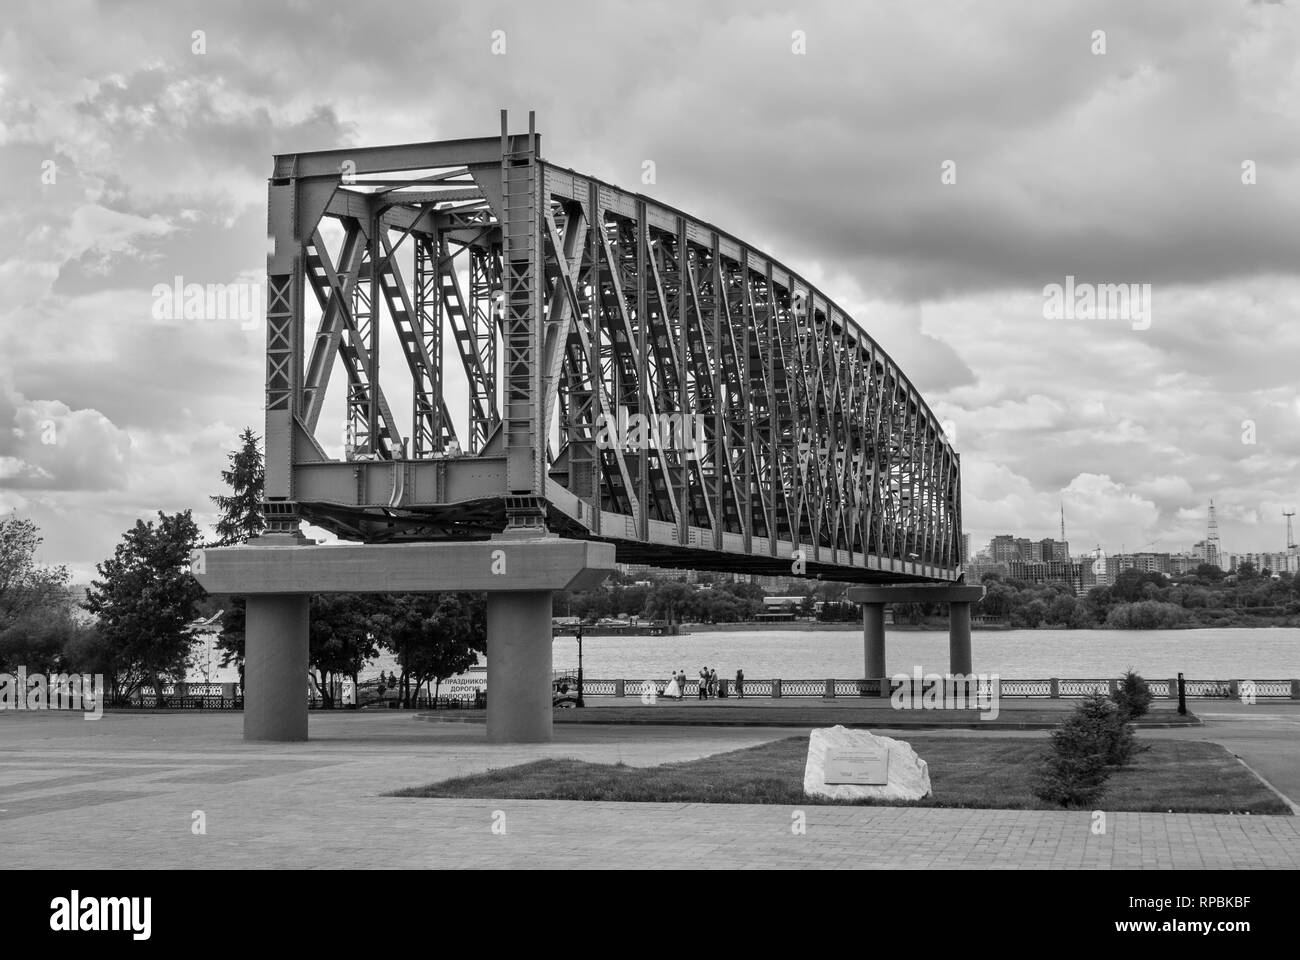 Novosibirsk, Russia - June 28, 2013: The part of railroad bridge on alley '120 years of Transsib'. Black and white photography. - Stock Image